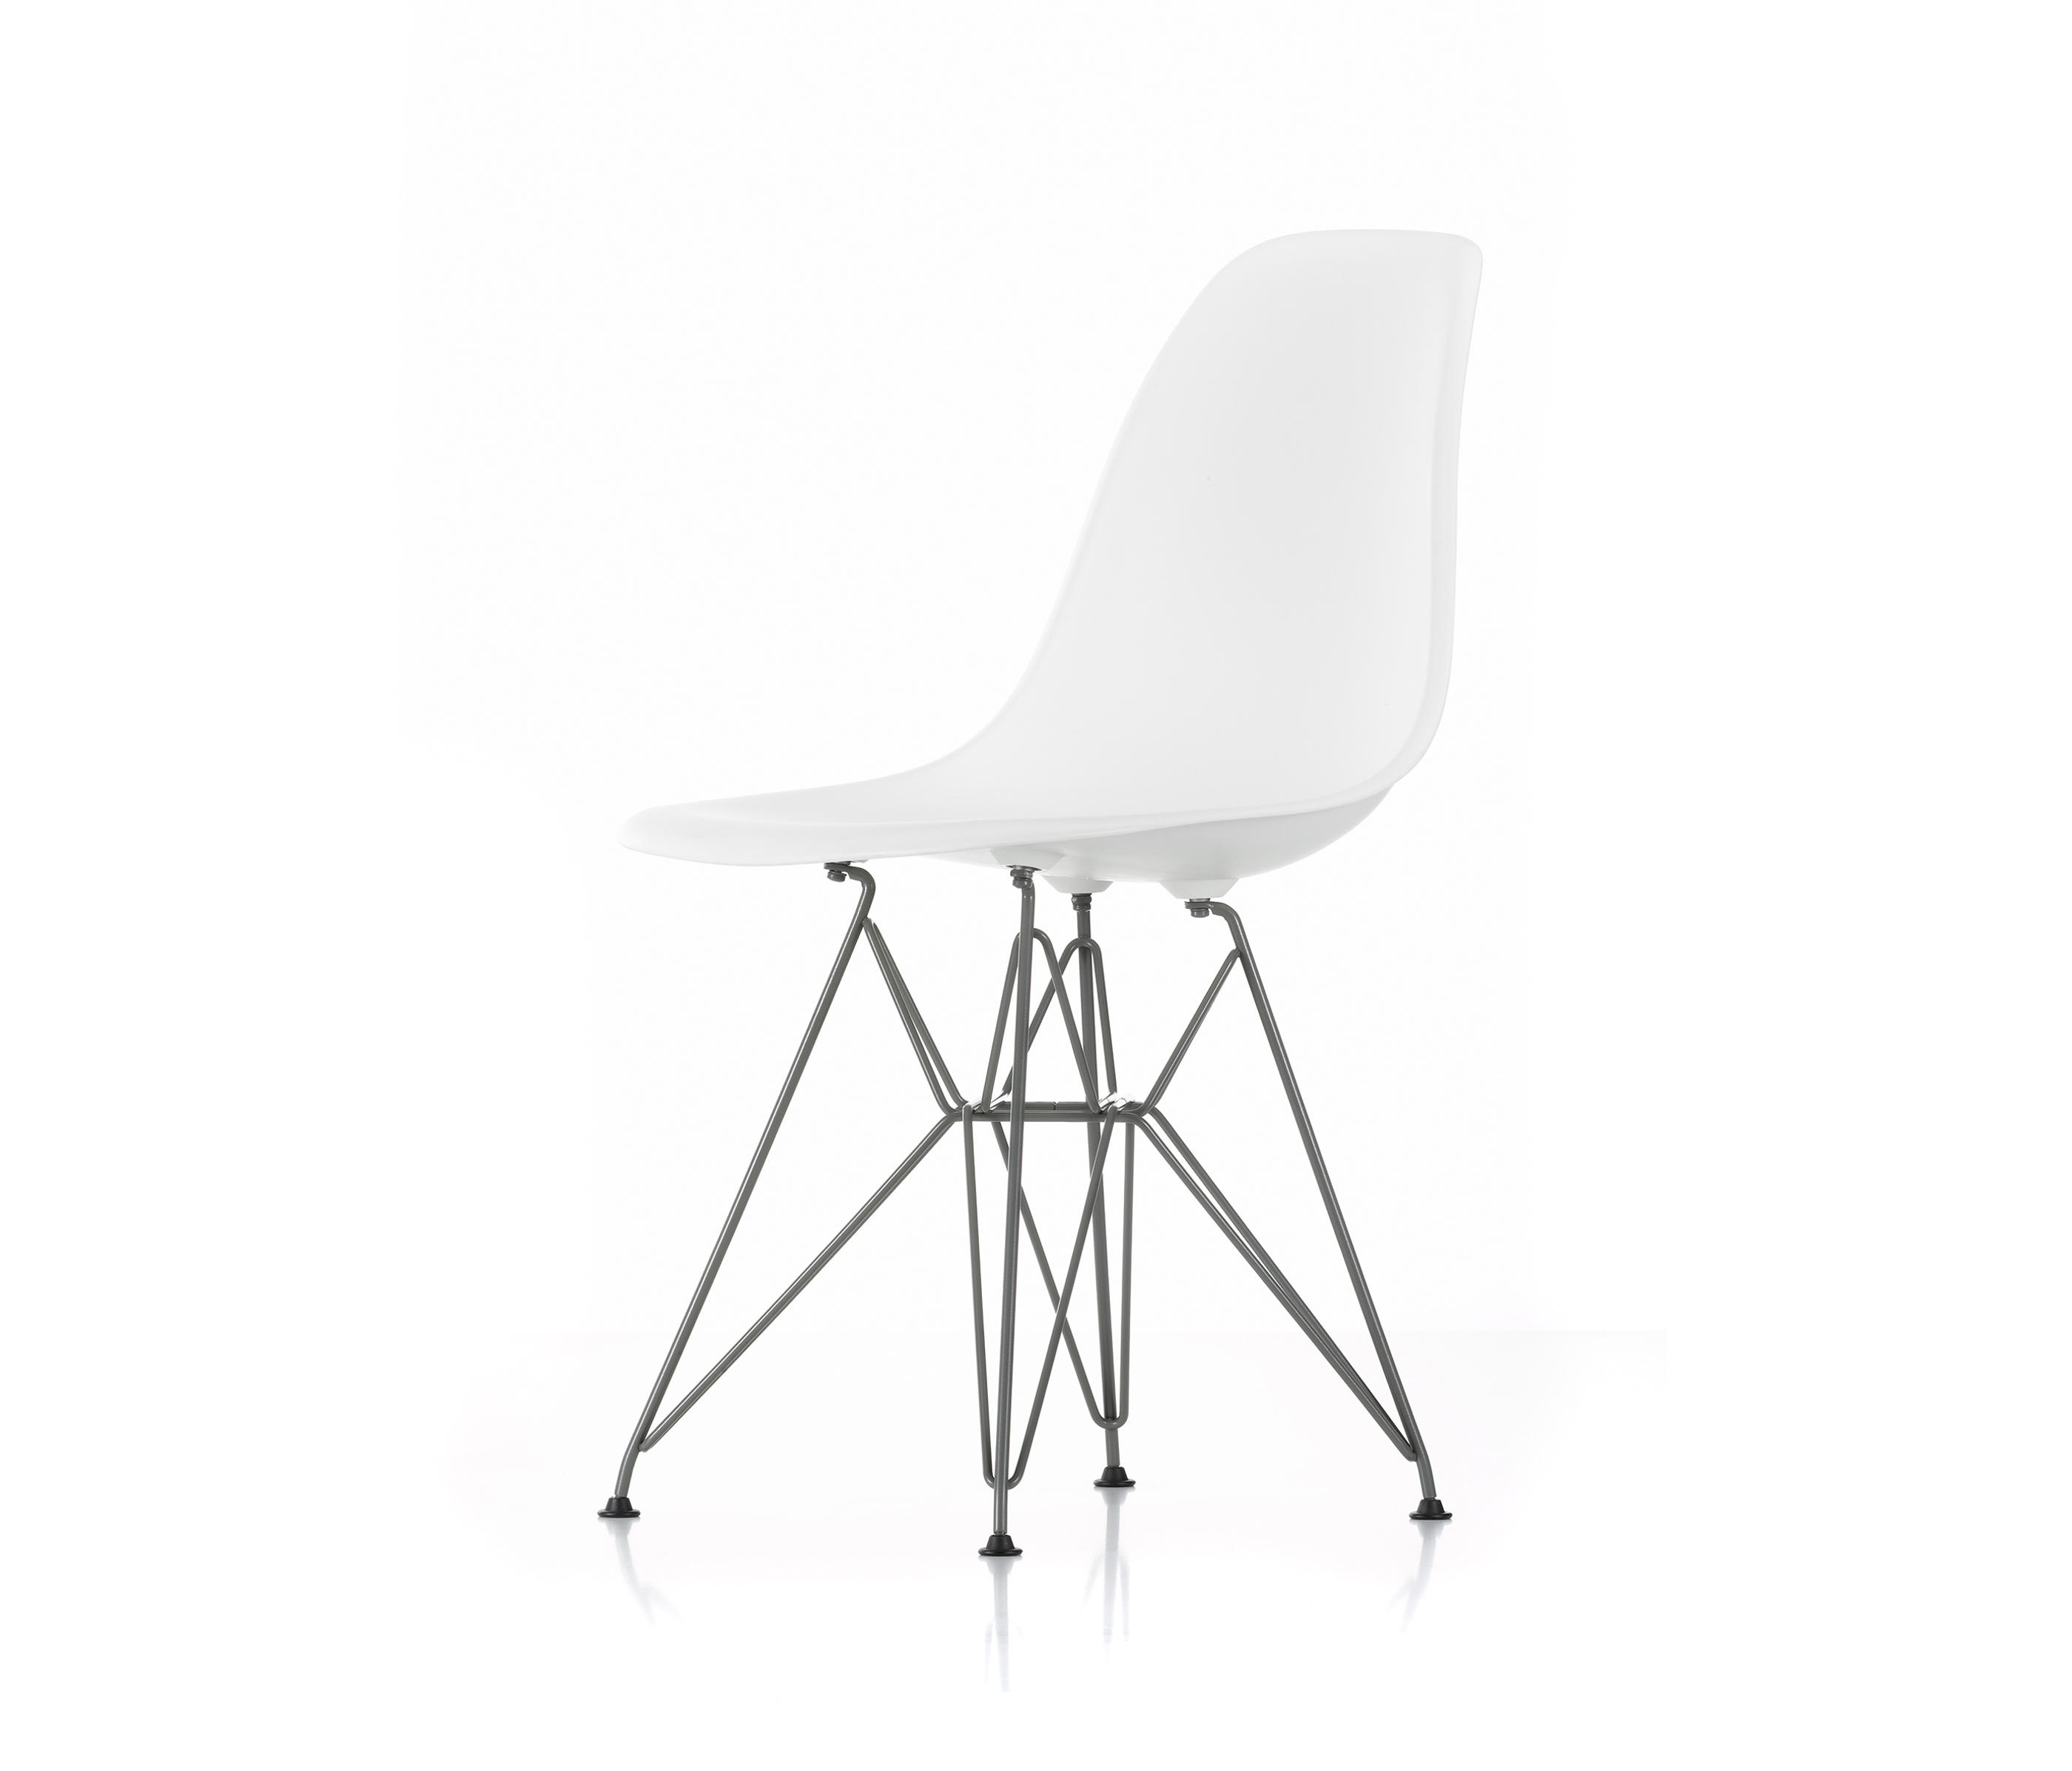 eames plastic side chair dsr multipurpose chairs from vitra architonic. Black Bedroom Furniture Sets. Home Design Ideas